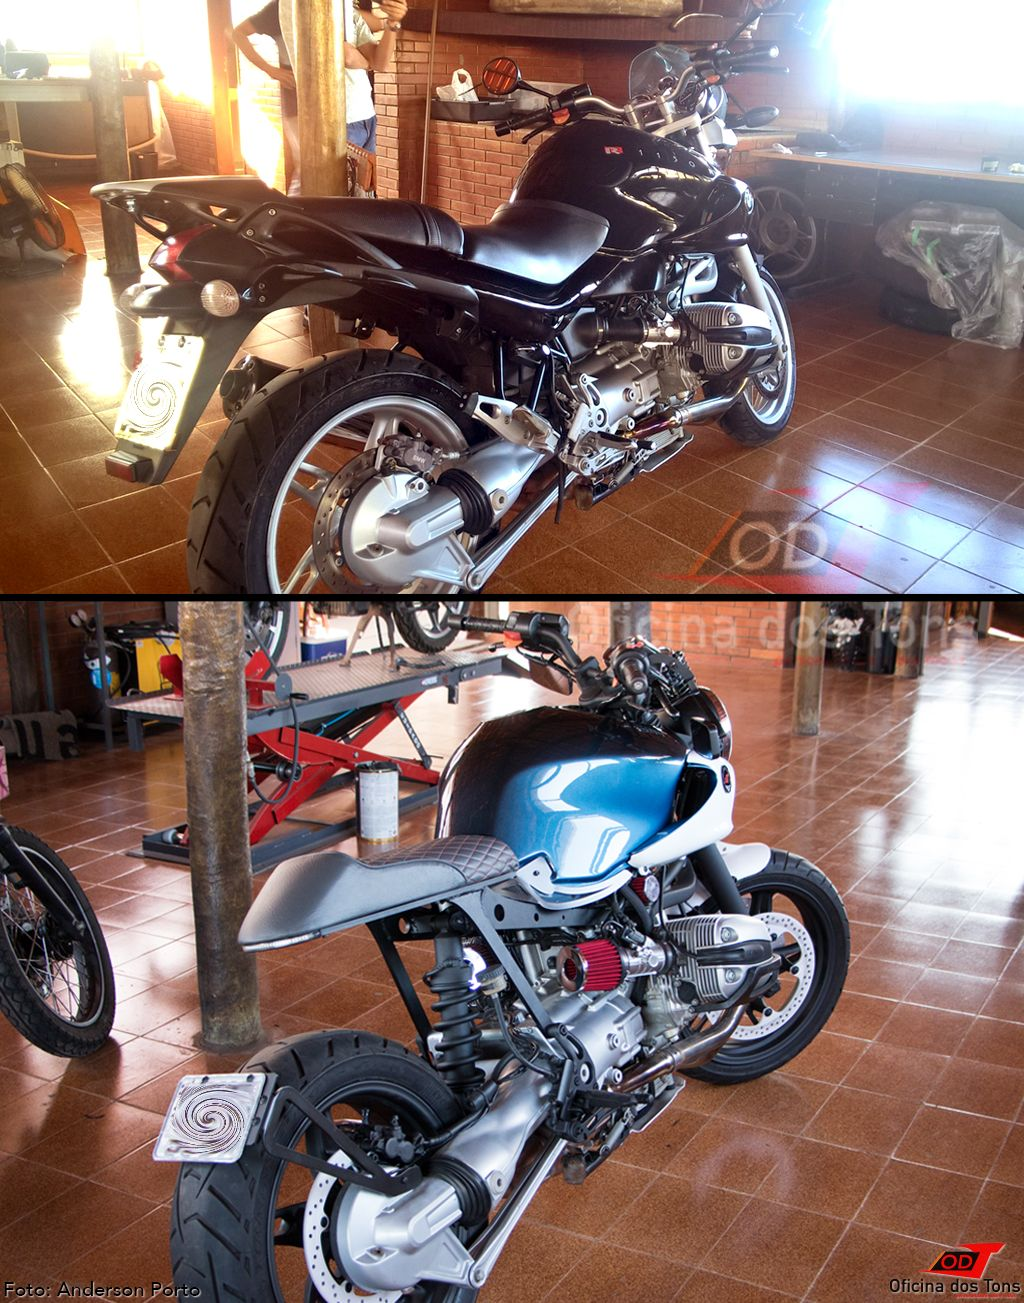 Bmw R1150 Cafe Racer By Oficina Dos Tons Before After Bmw